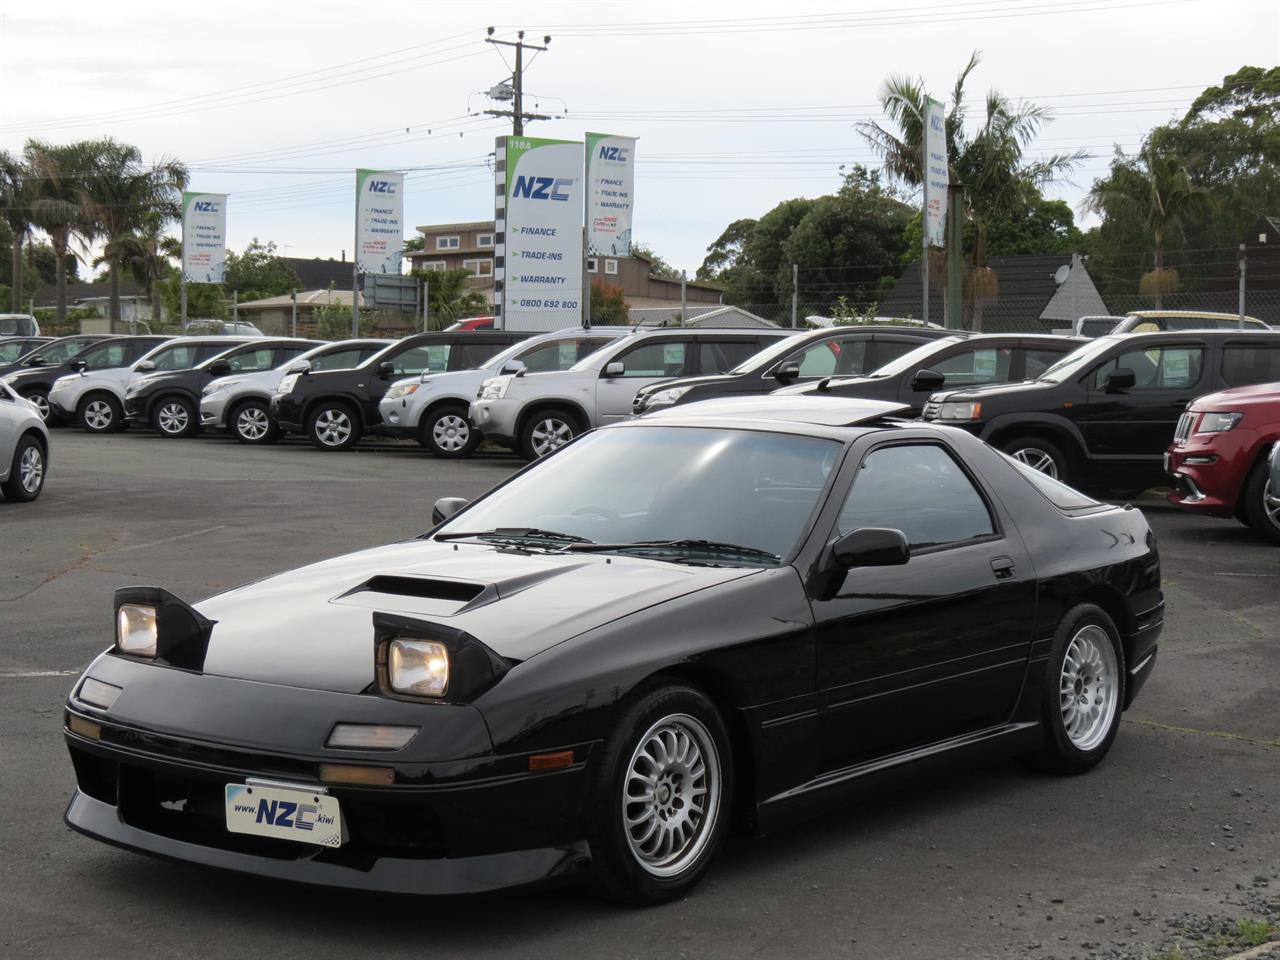 1991 Mazda RX7 | only $105 weekly